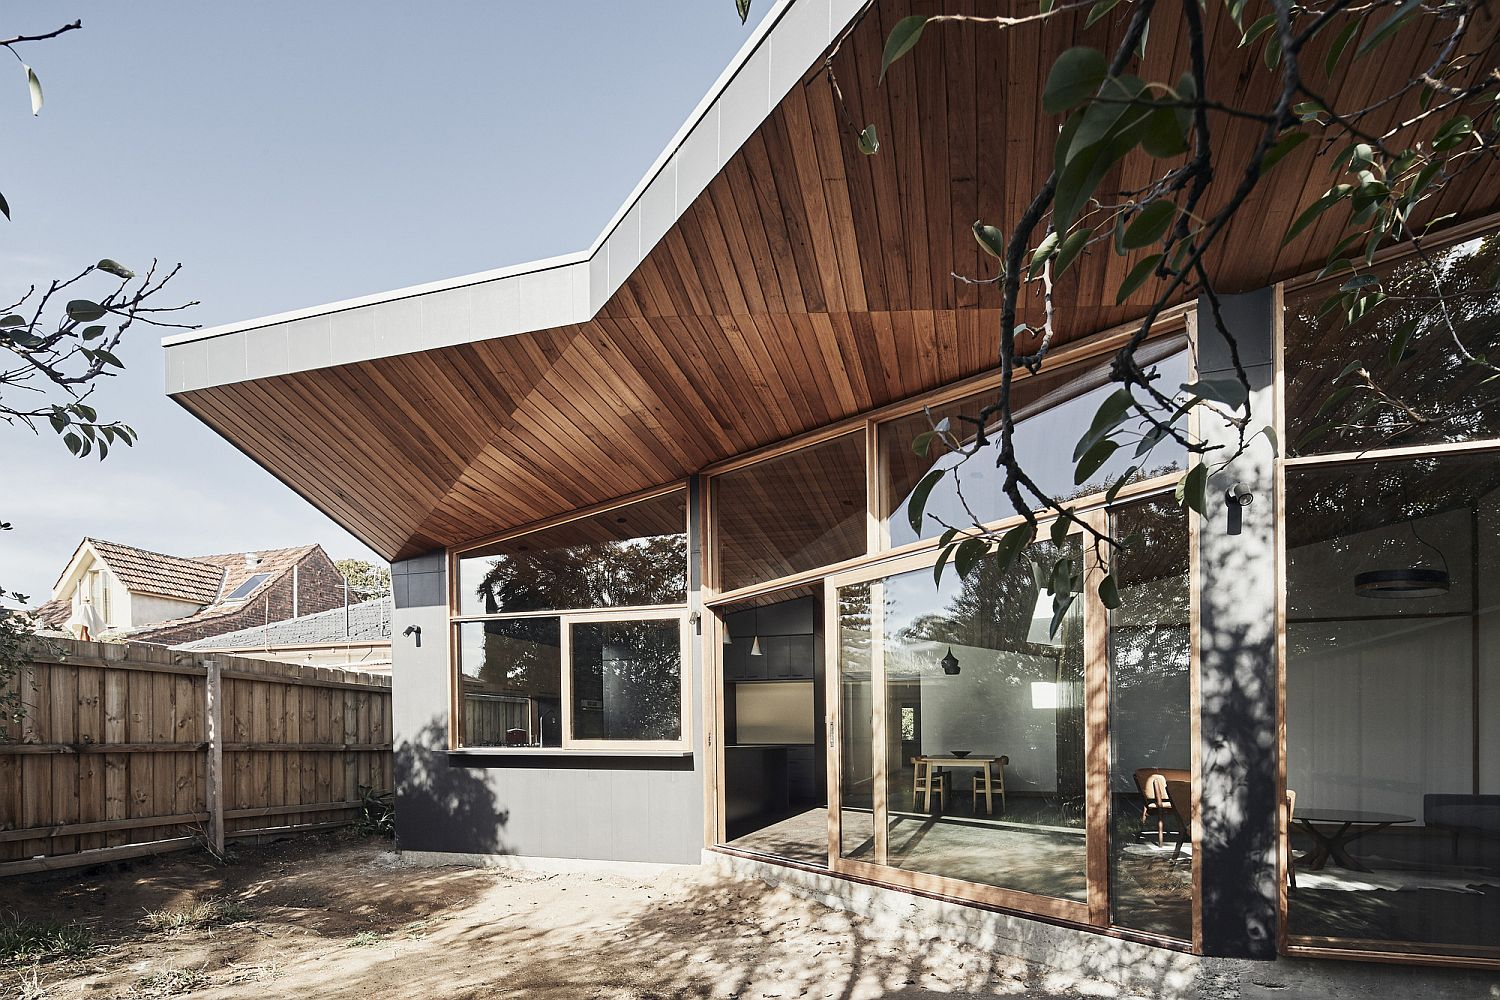 Sculptural design of the ceiling gives the rear facade a unique look